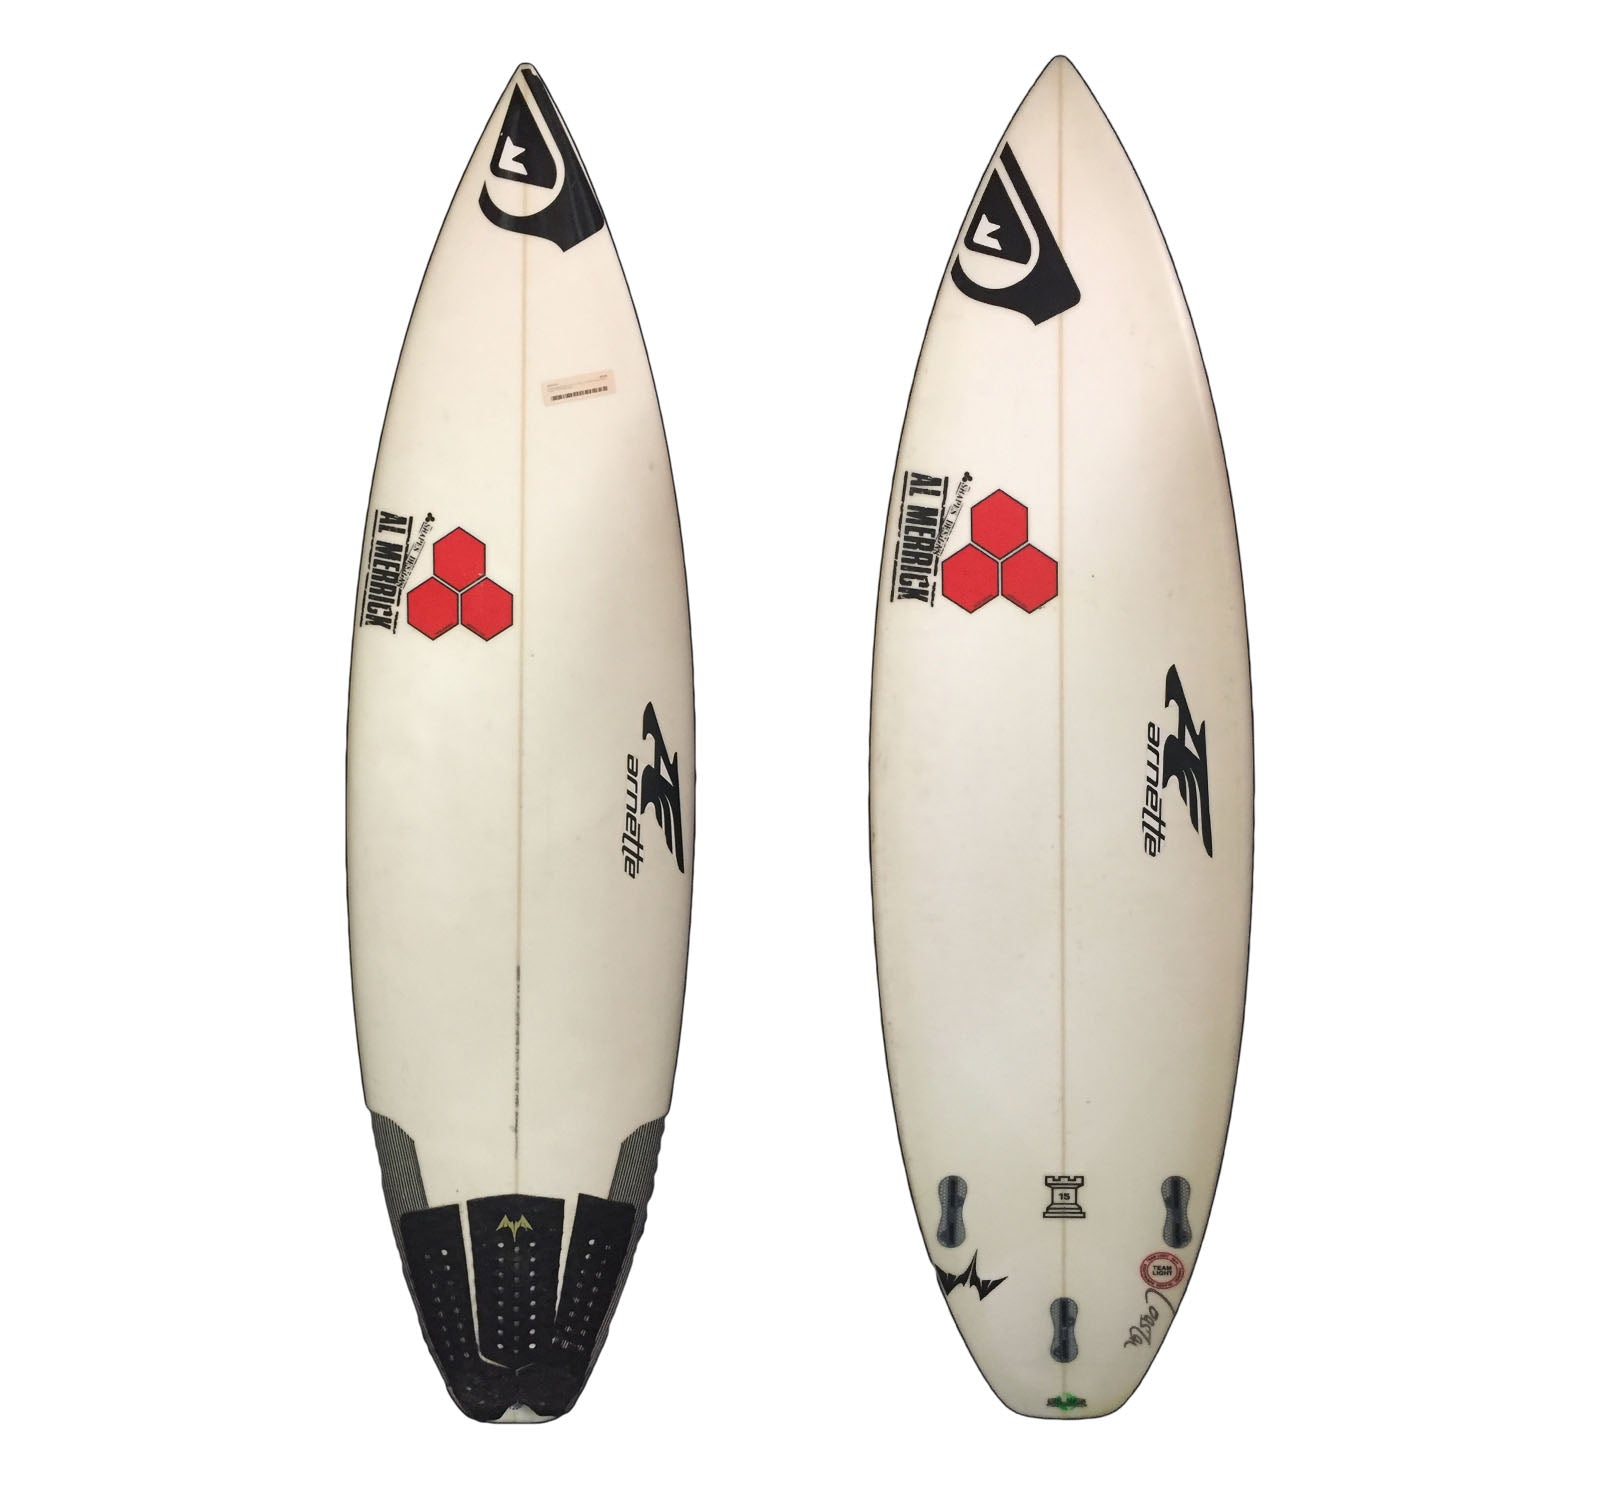 Channel Islands Rookie 15 5'10 x 18 9/16 x 2 1/4 EPS Used Surfboard (Custom For Michael Dunphy)